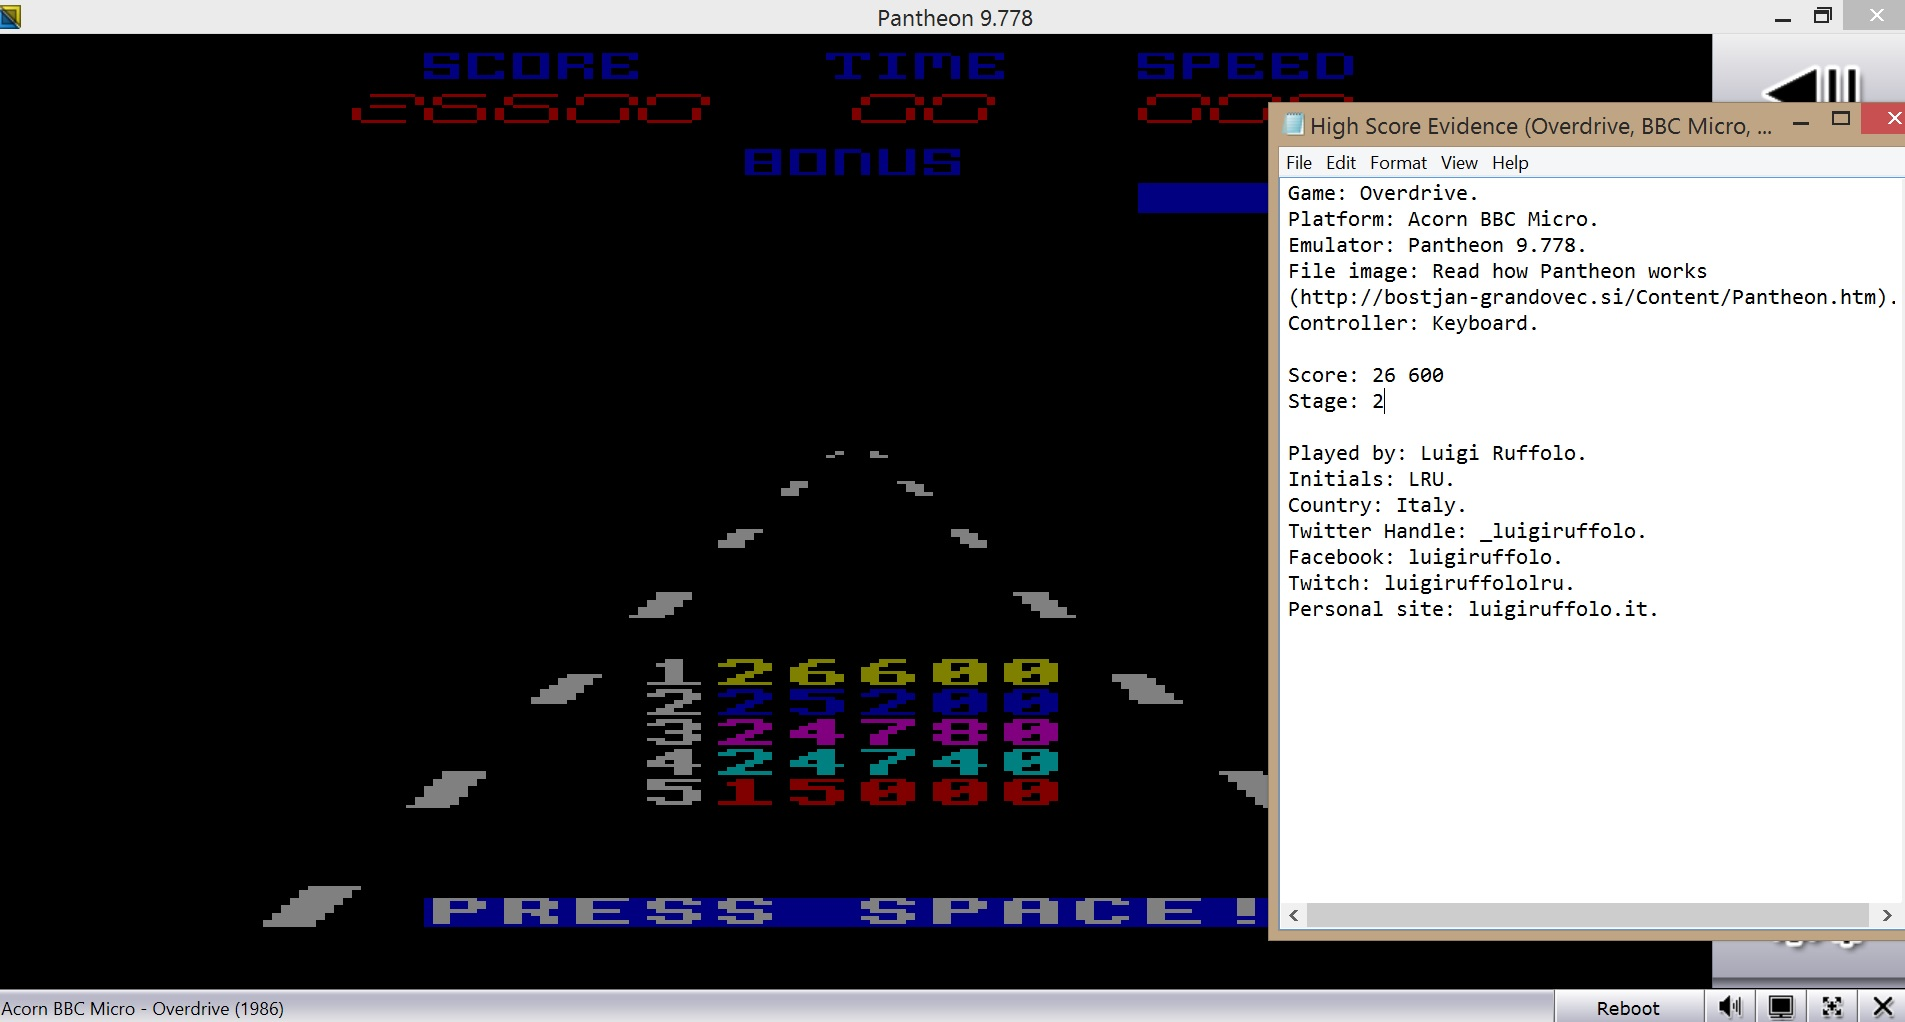 LuigiRuffolo: Overdrive (BBC Micro Emulated) 26,600 points on 2020-08-02 08:23:52